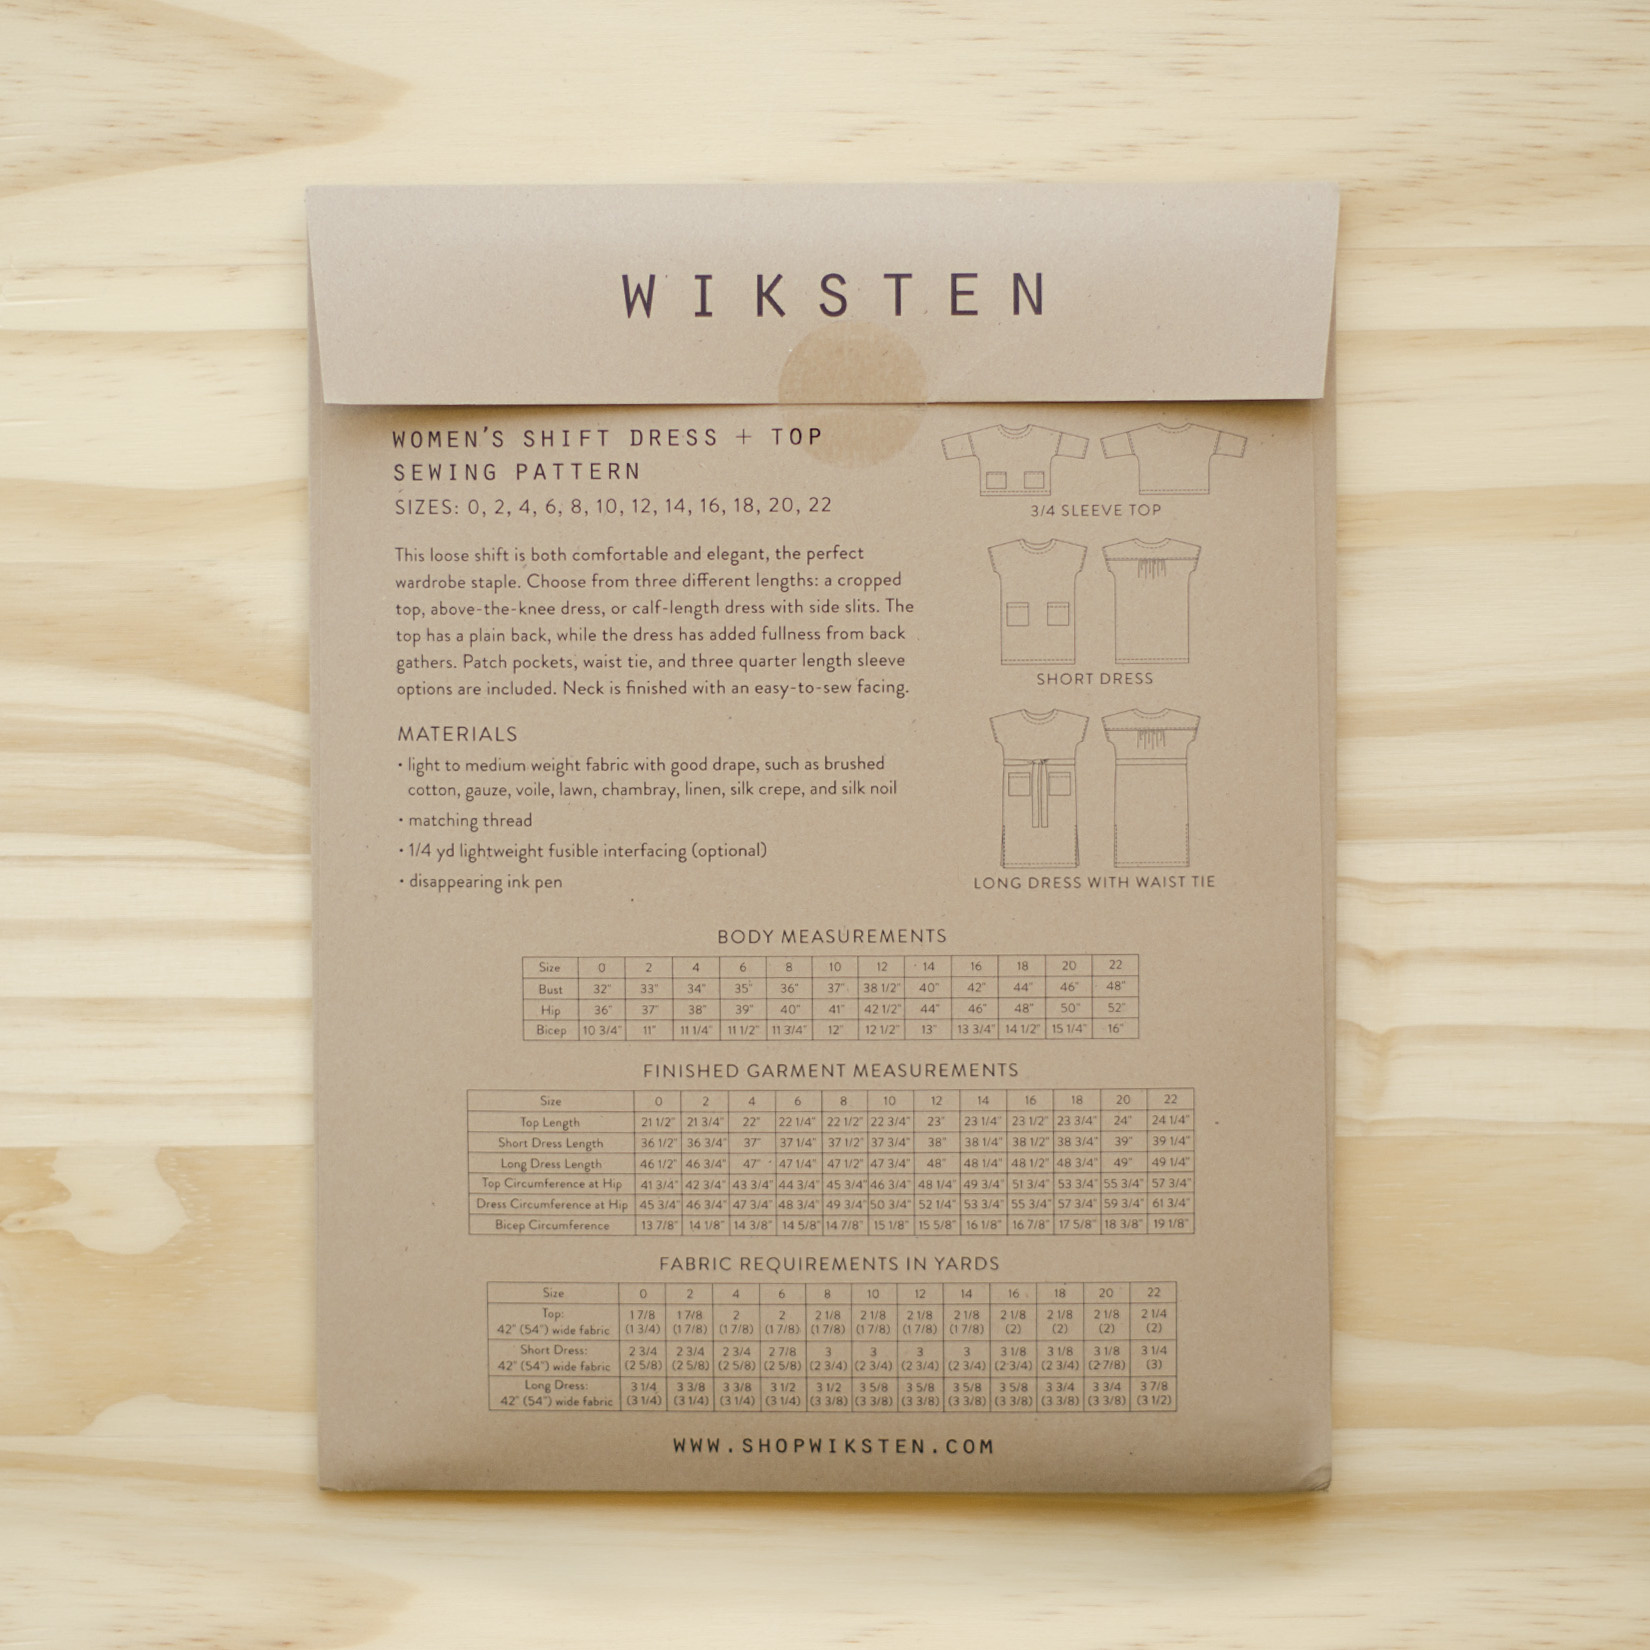 Wiksten : Sewing Pattern : Women's Shift Dress + Top